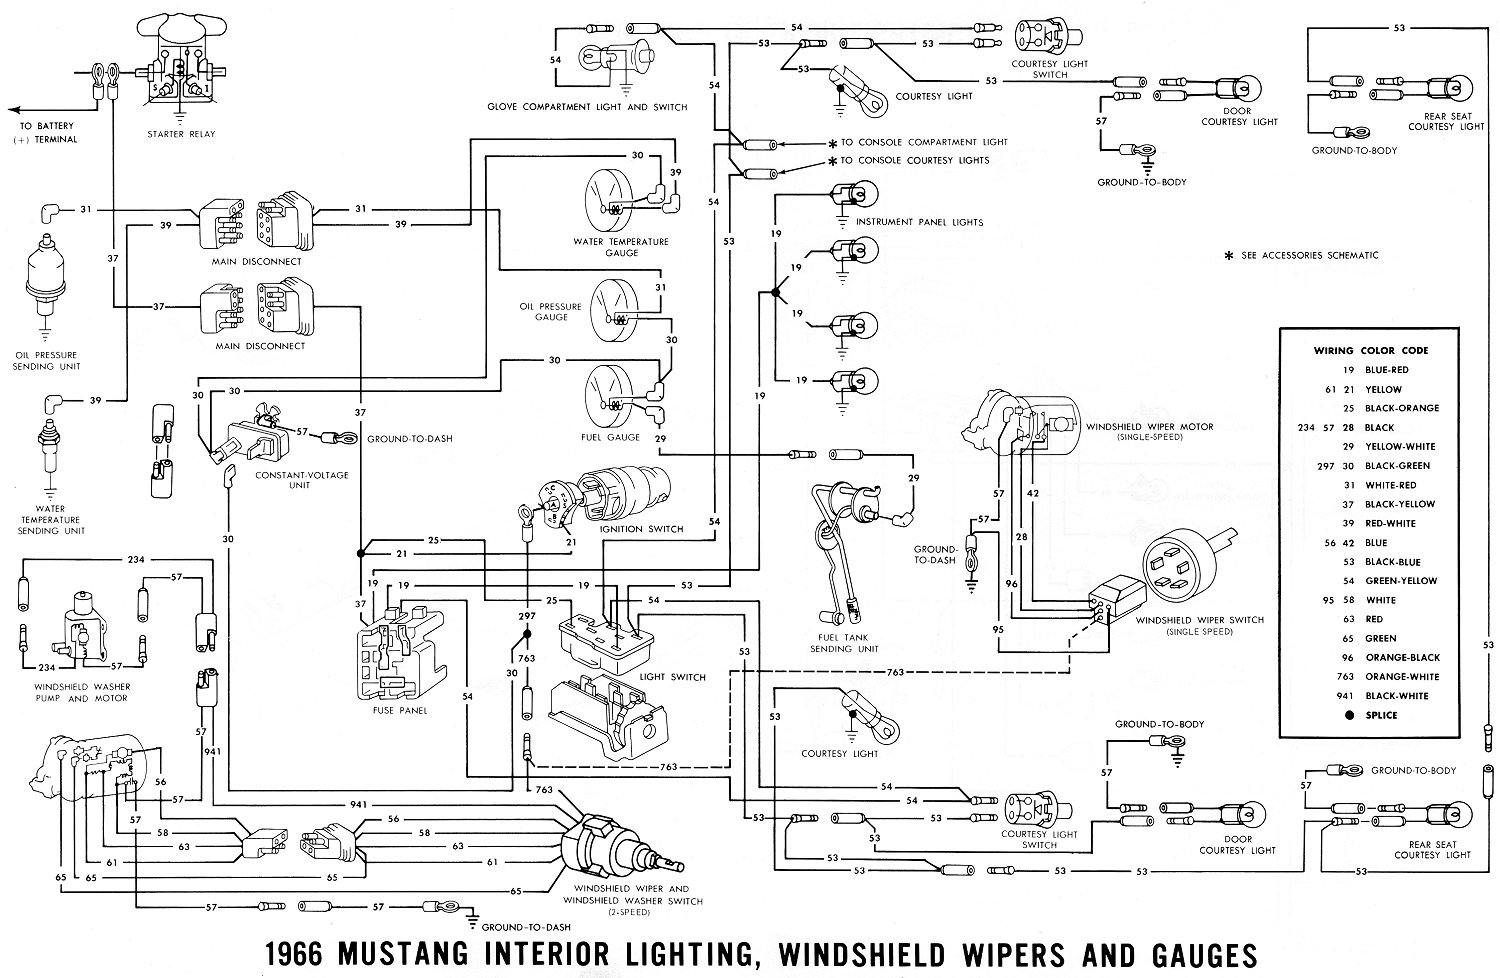 66inter1 1966 mustang wiring diagrams average joe restoration 1968 mustang instrument cluster wiring diagram at readyjetset.co